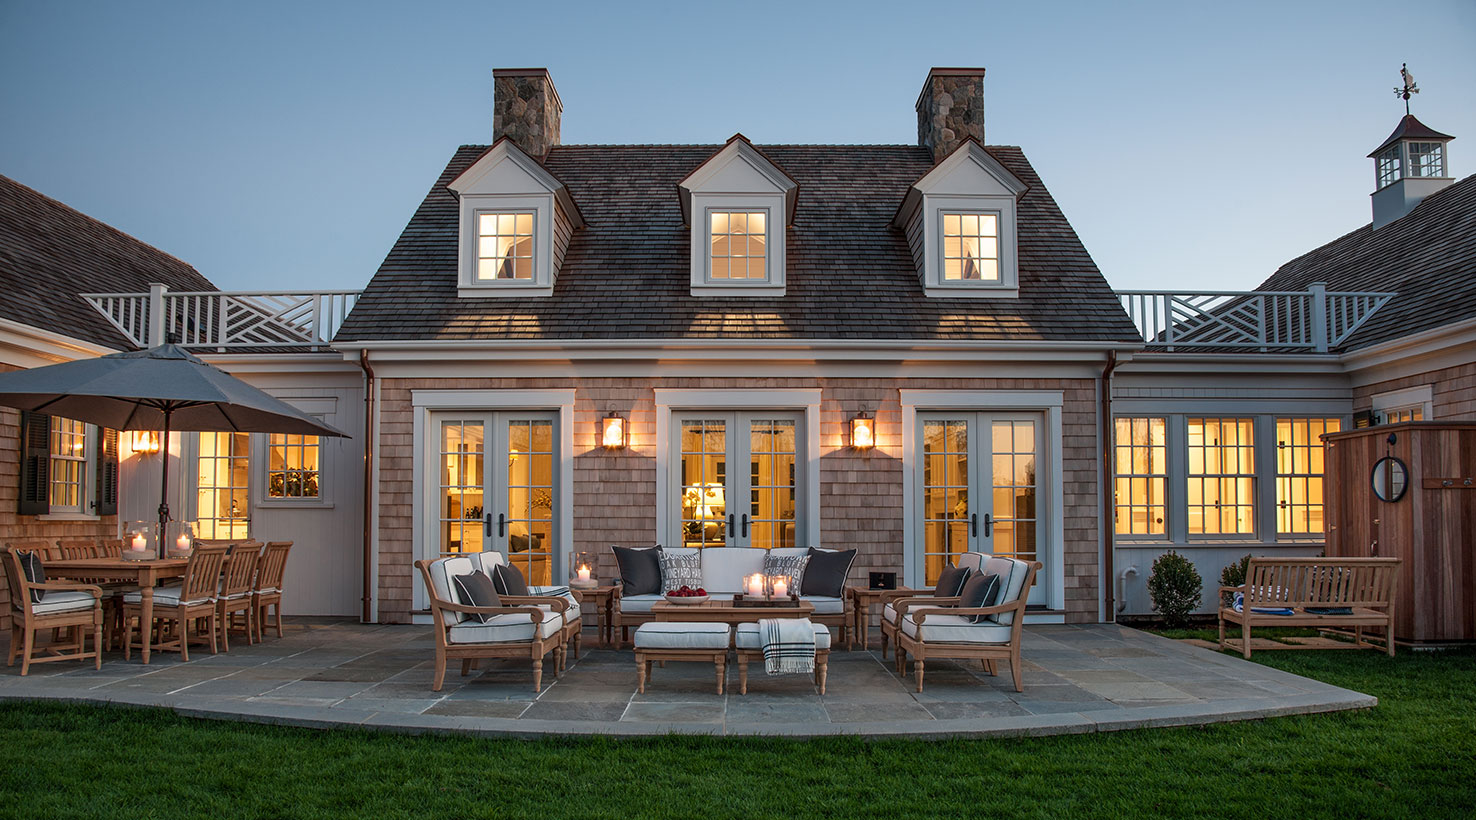 Hgtv Dream Home 2015 The Look Of Hgtv Sponsored By